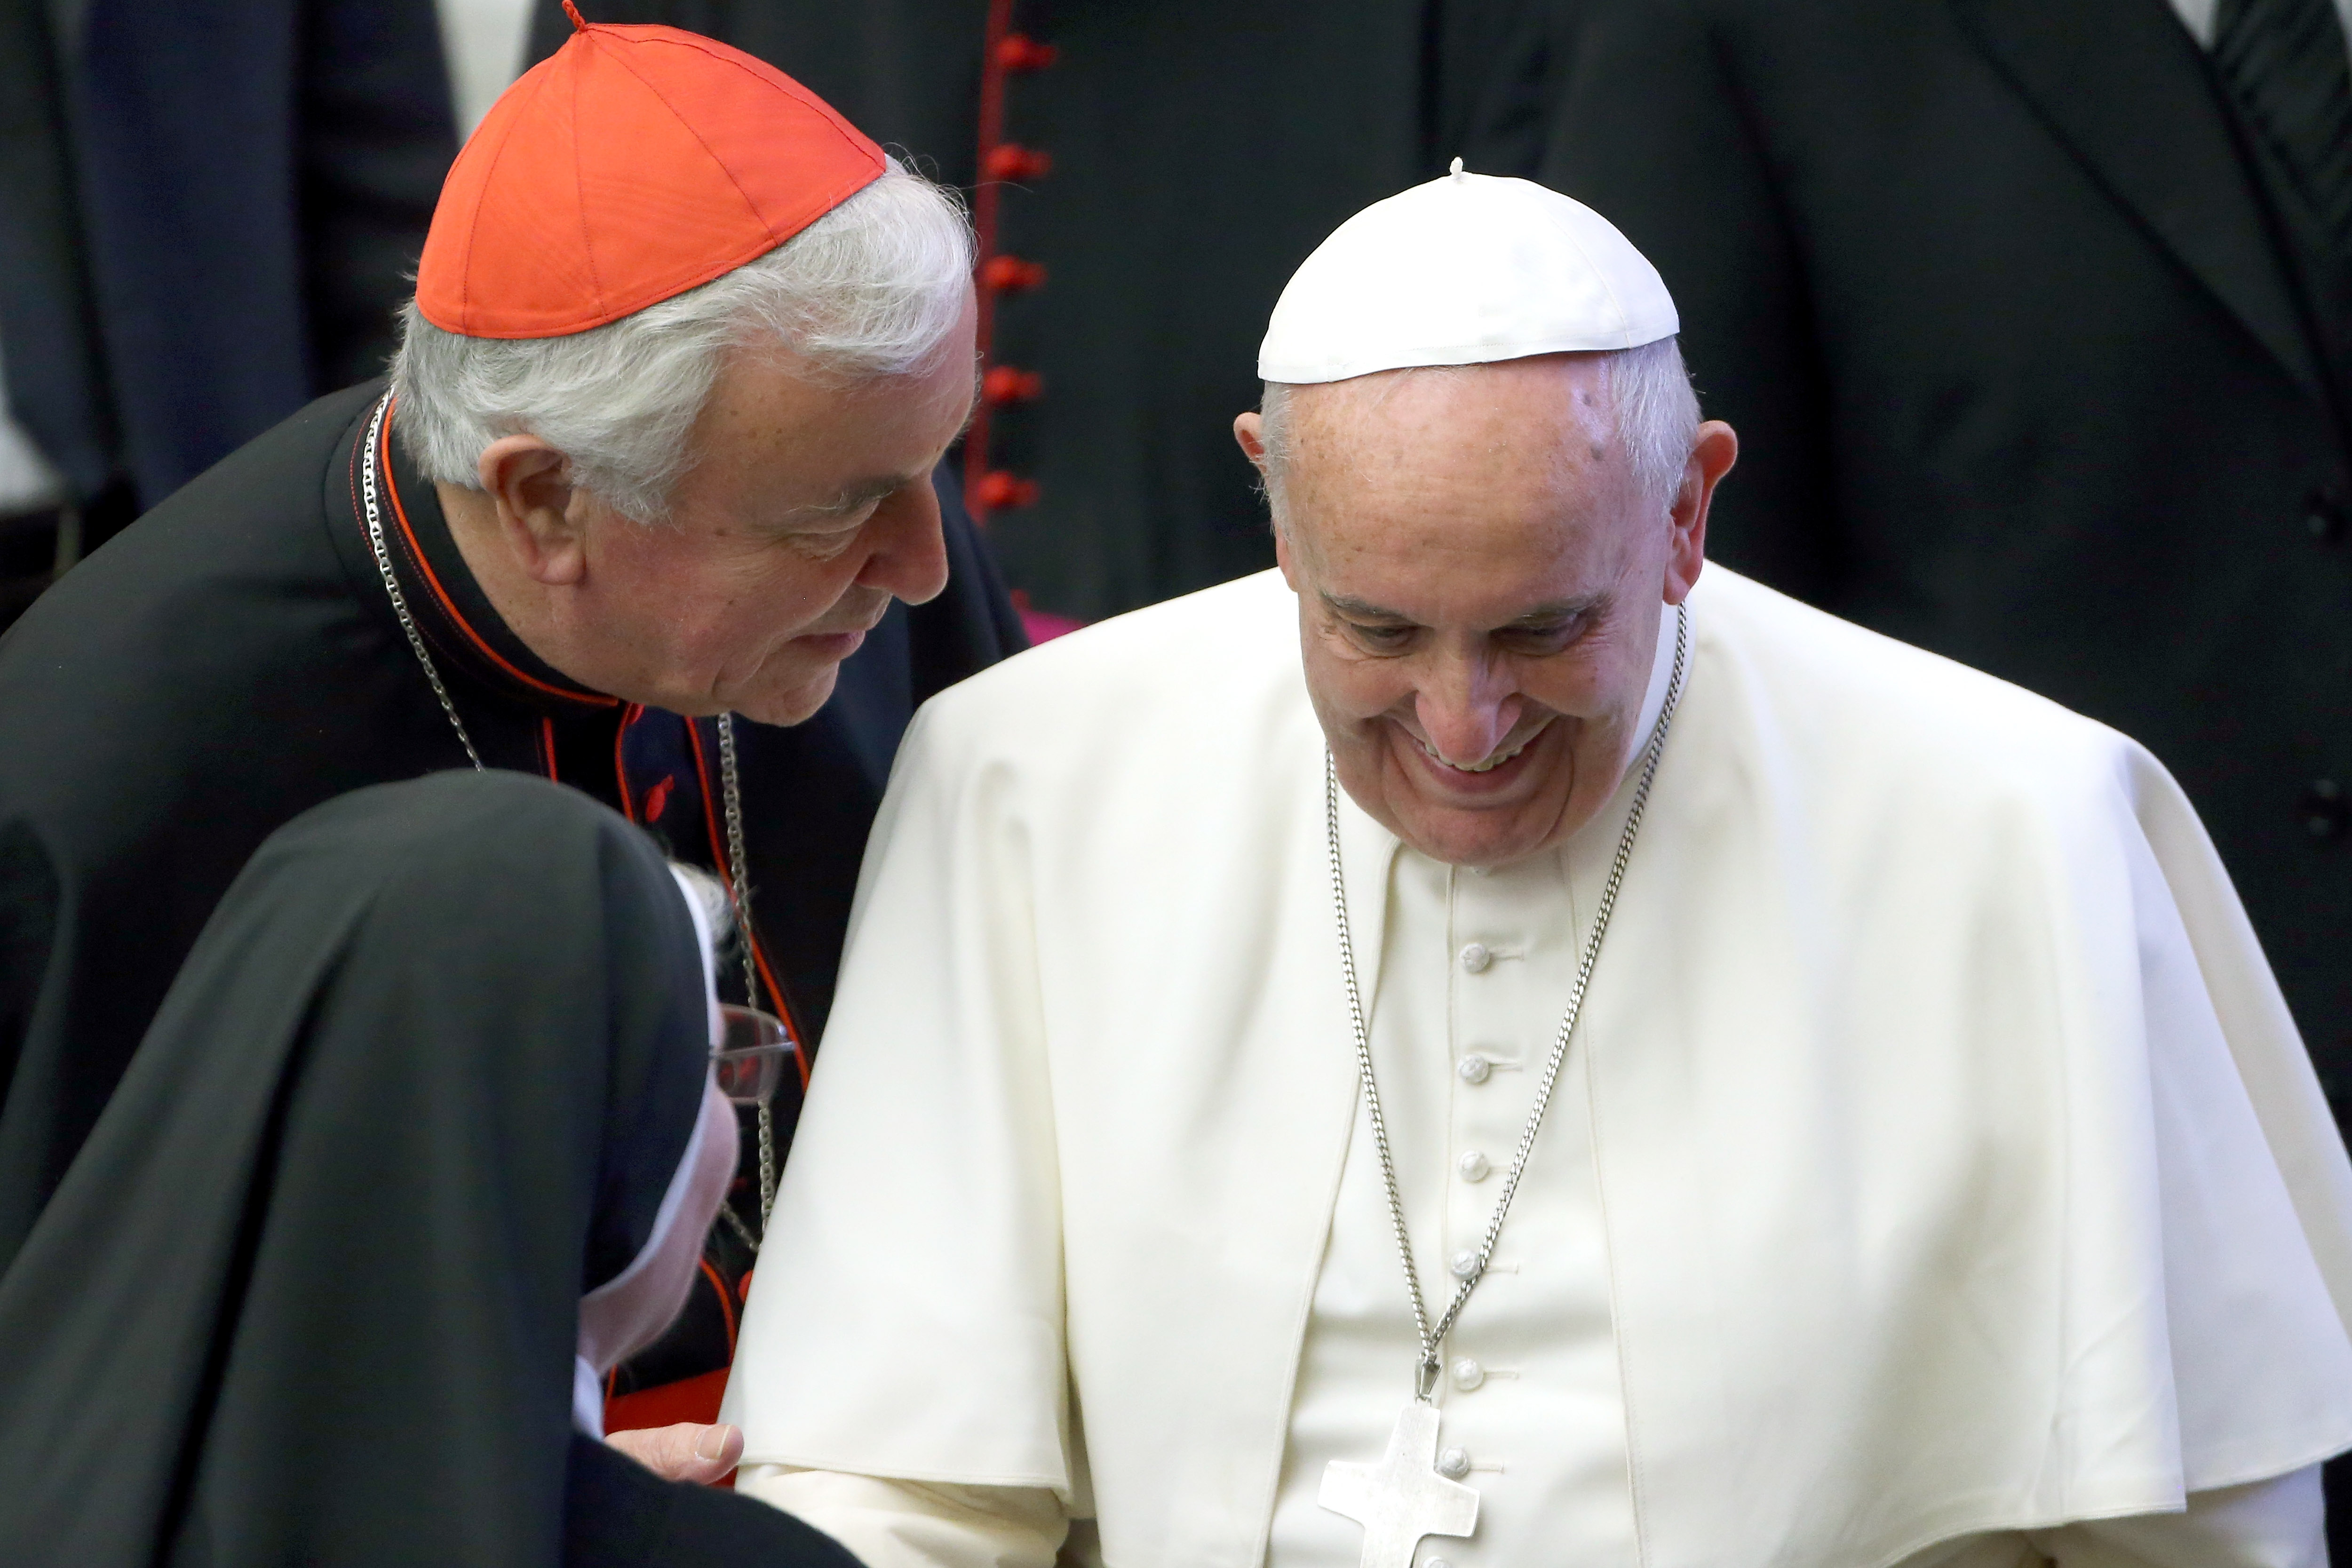 Pope Francis, flanked by the Archbishop of Westminster cardinal Vincent Nichols (L) greets a nun during the weekly general audience at the Paul VI Hall on January 7, 2015 in Vatican City, Vatican.